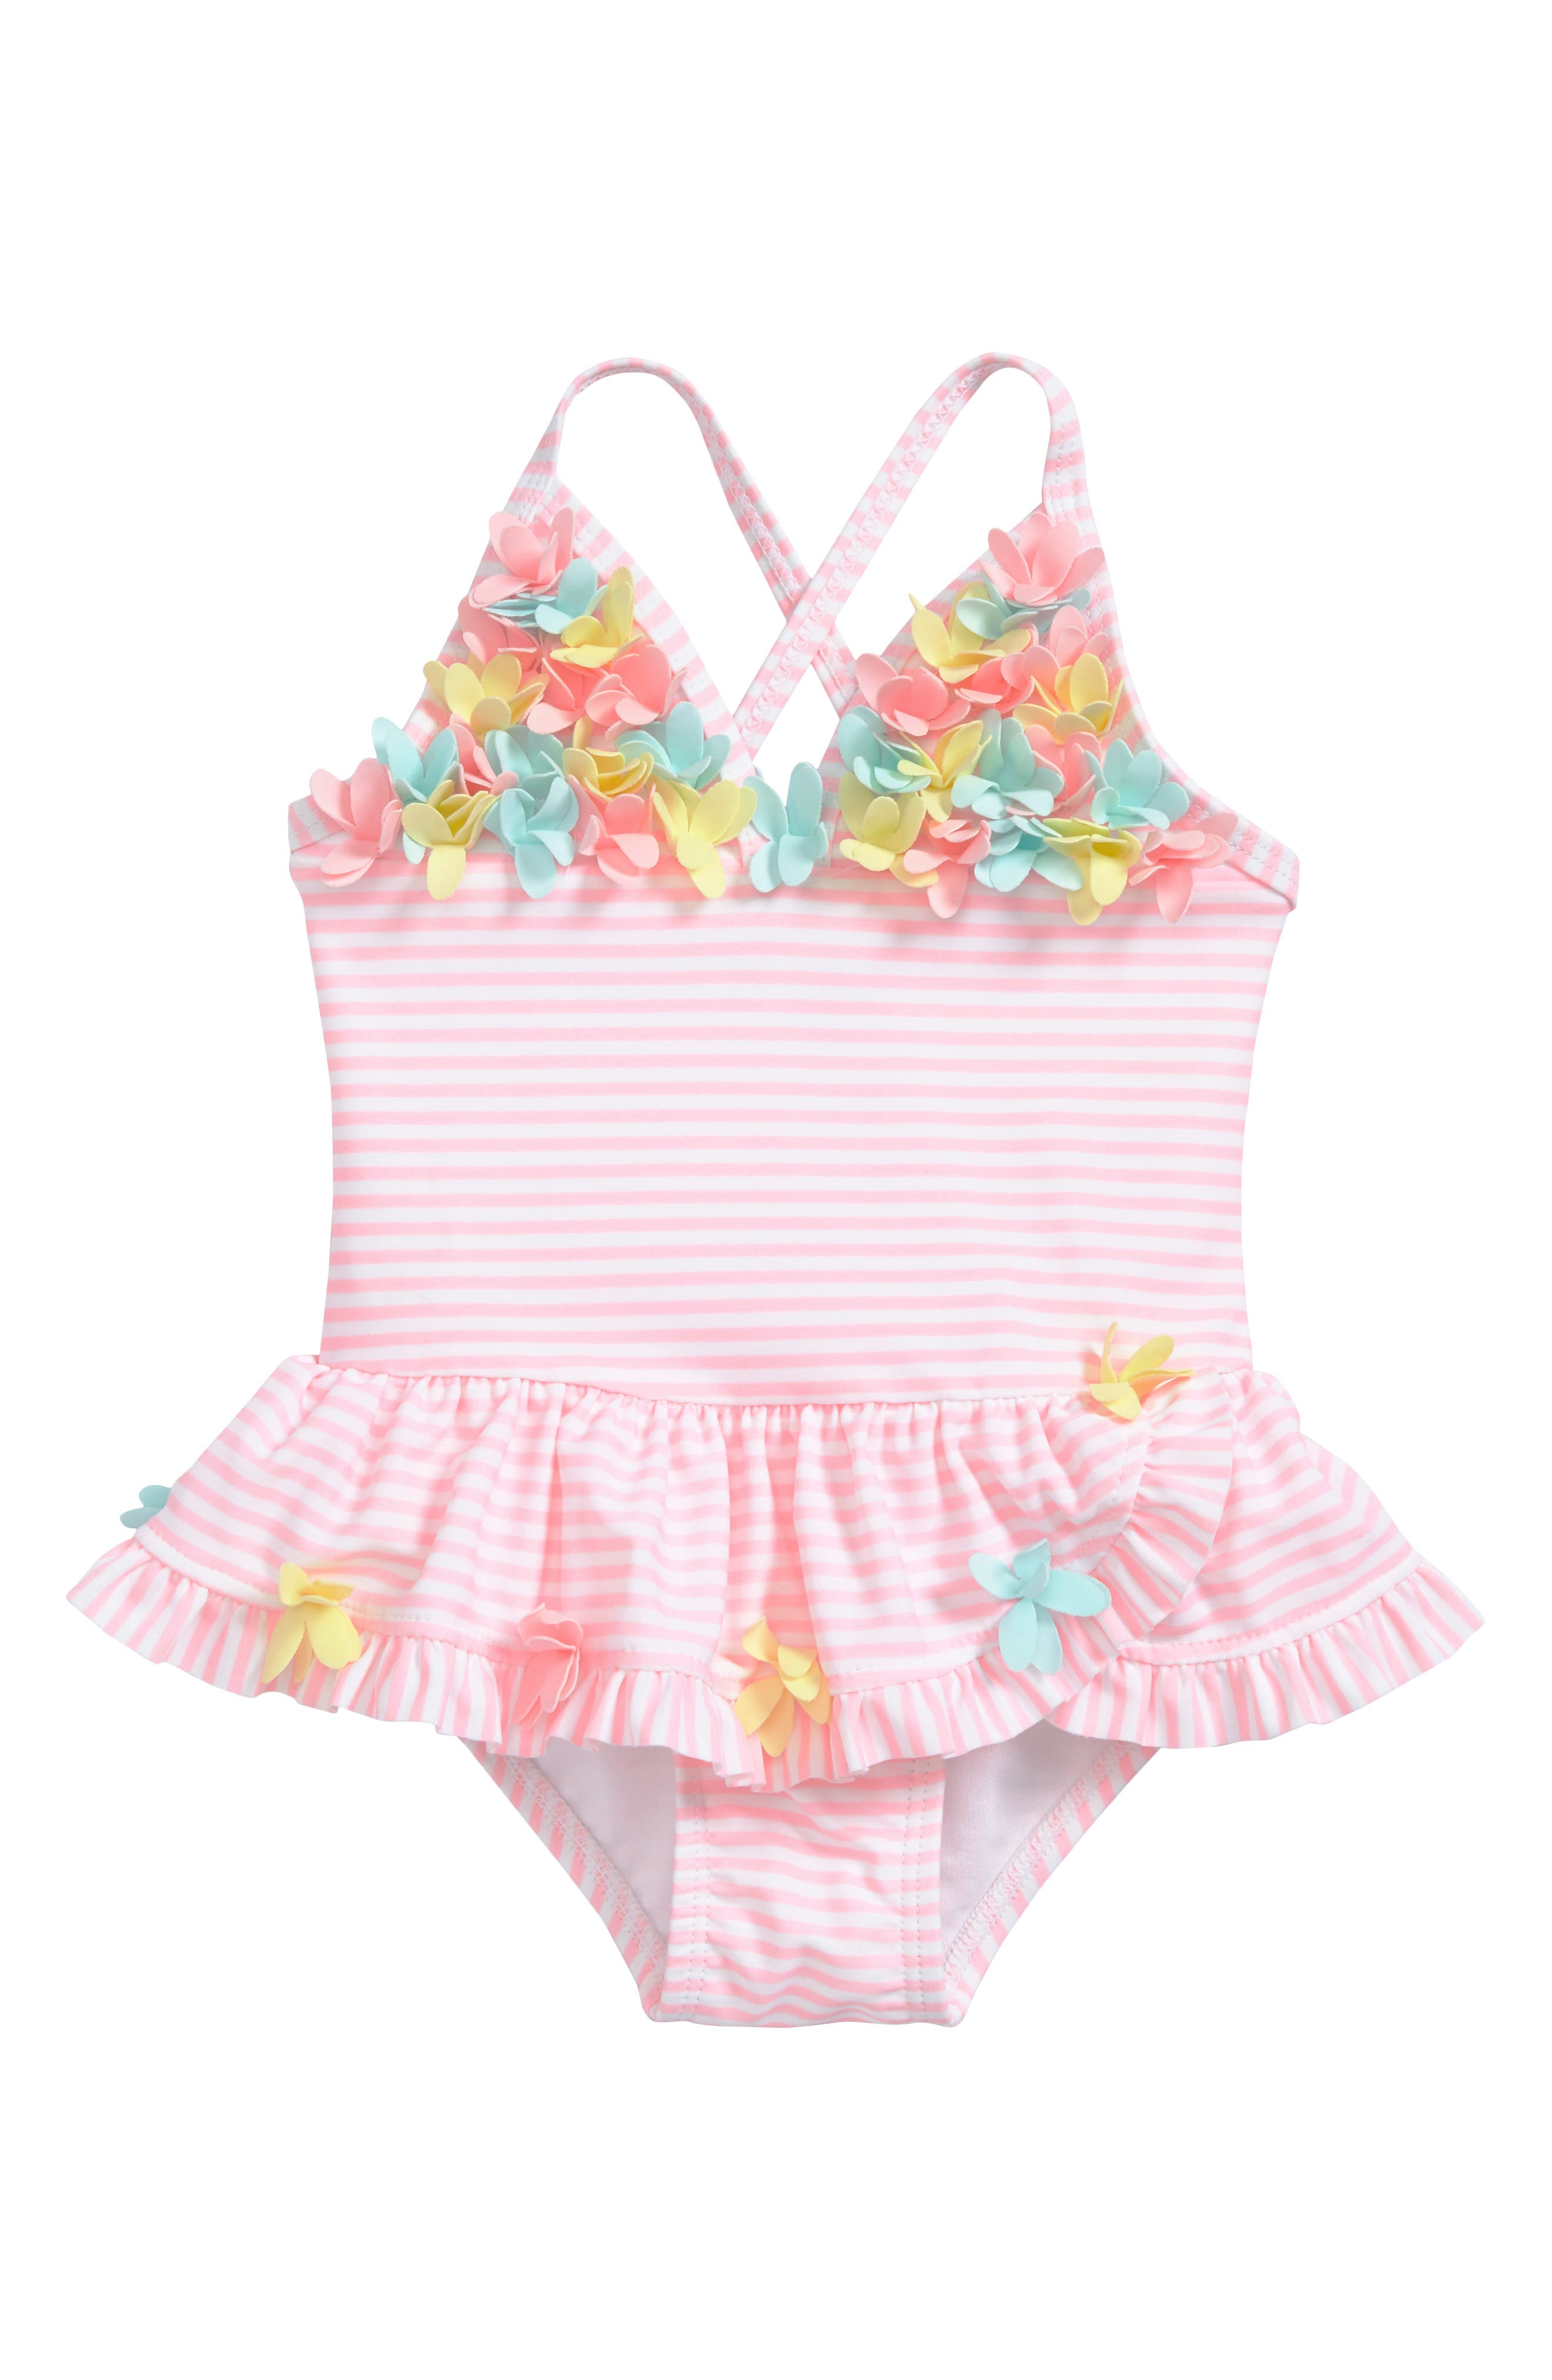 Main Image - Little Me Flower Appliqué Skirted One-Piece Swimsuit (Baby Girls)